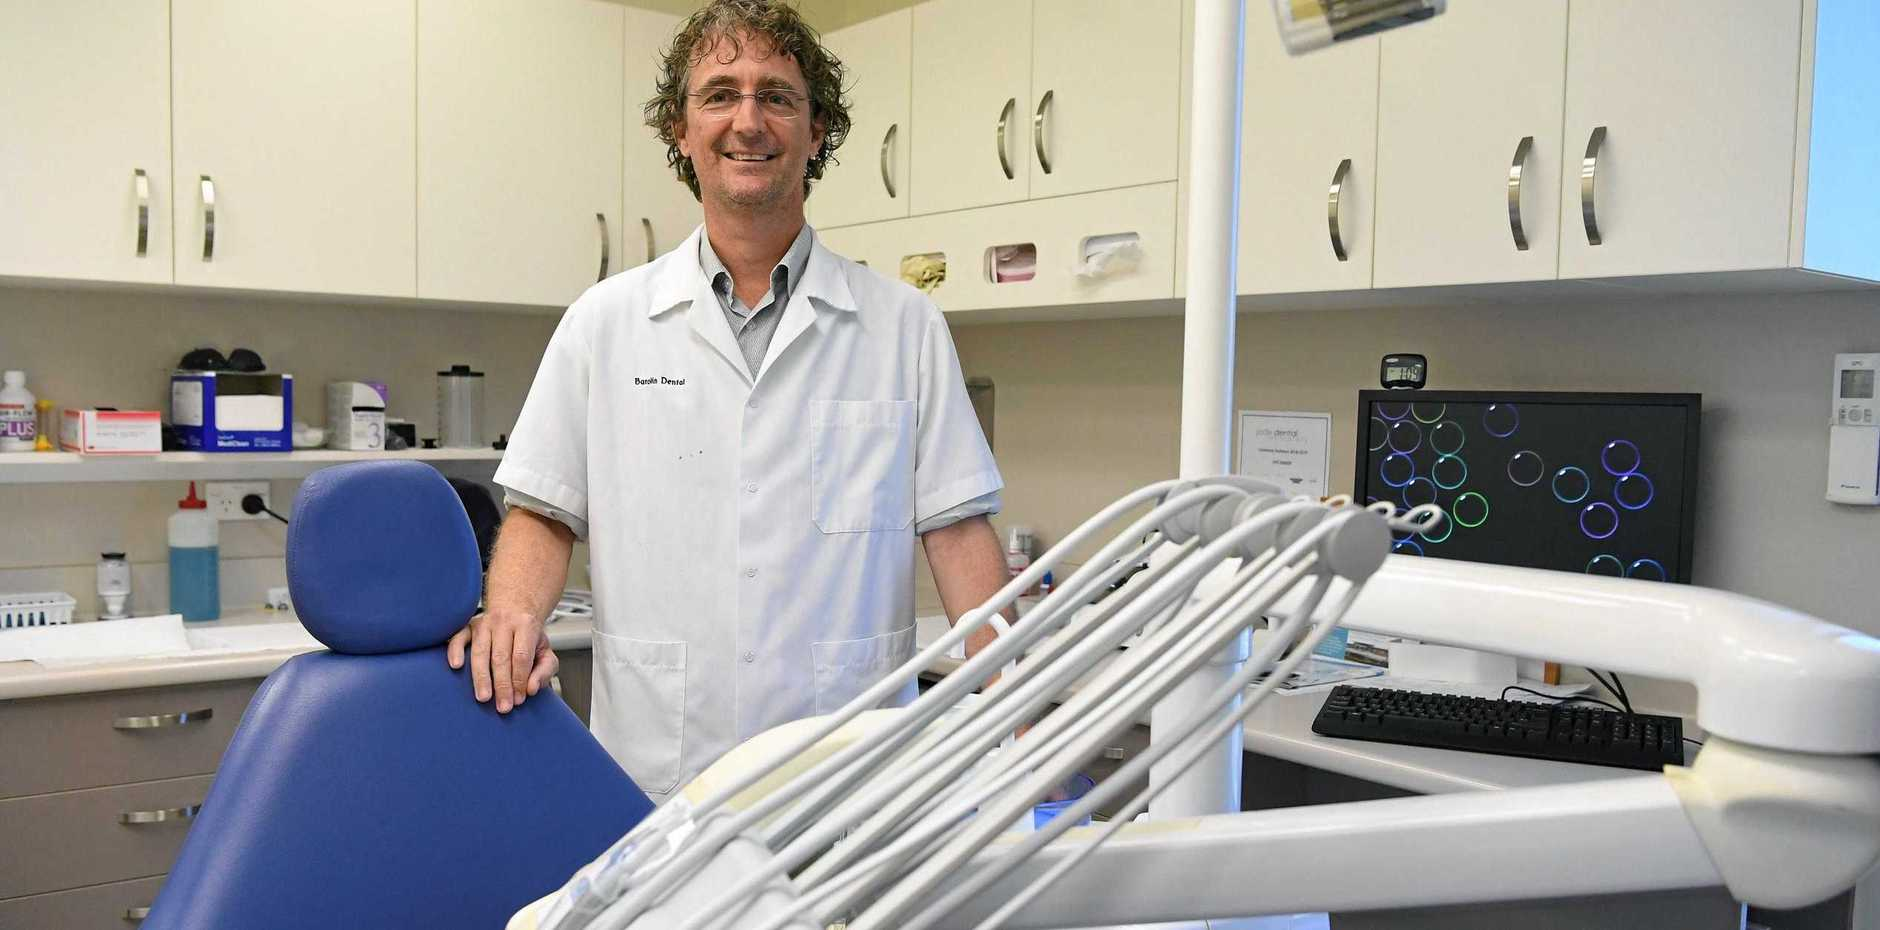 DON'T DELAY IN FIGHTING DECAY: It's a touchy subject, but Dr Adrian Frick strongly believes fluoride should be introduced into the Bundaberg water supply.